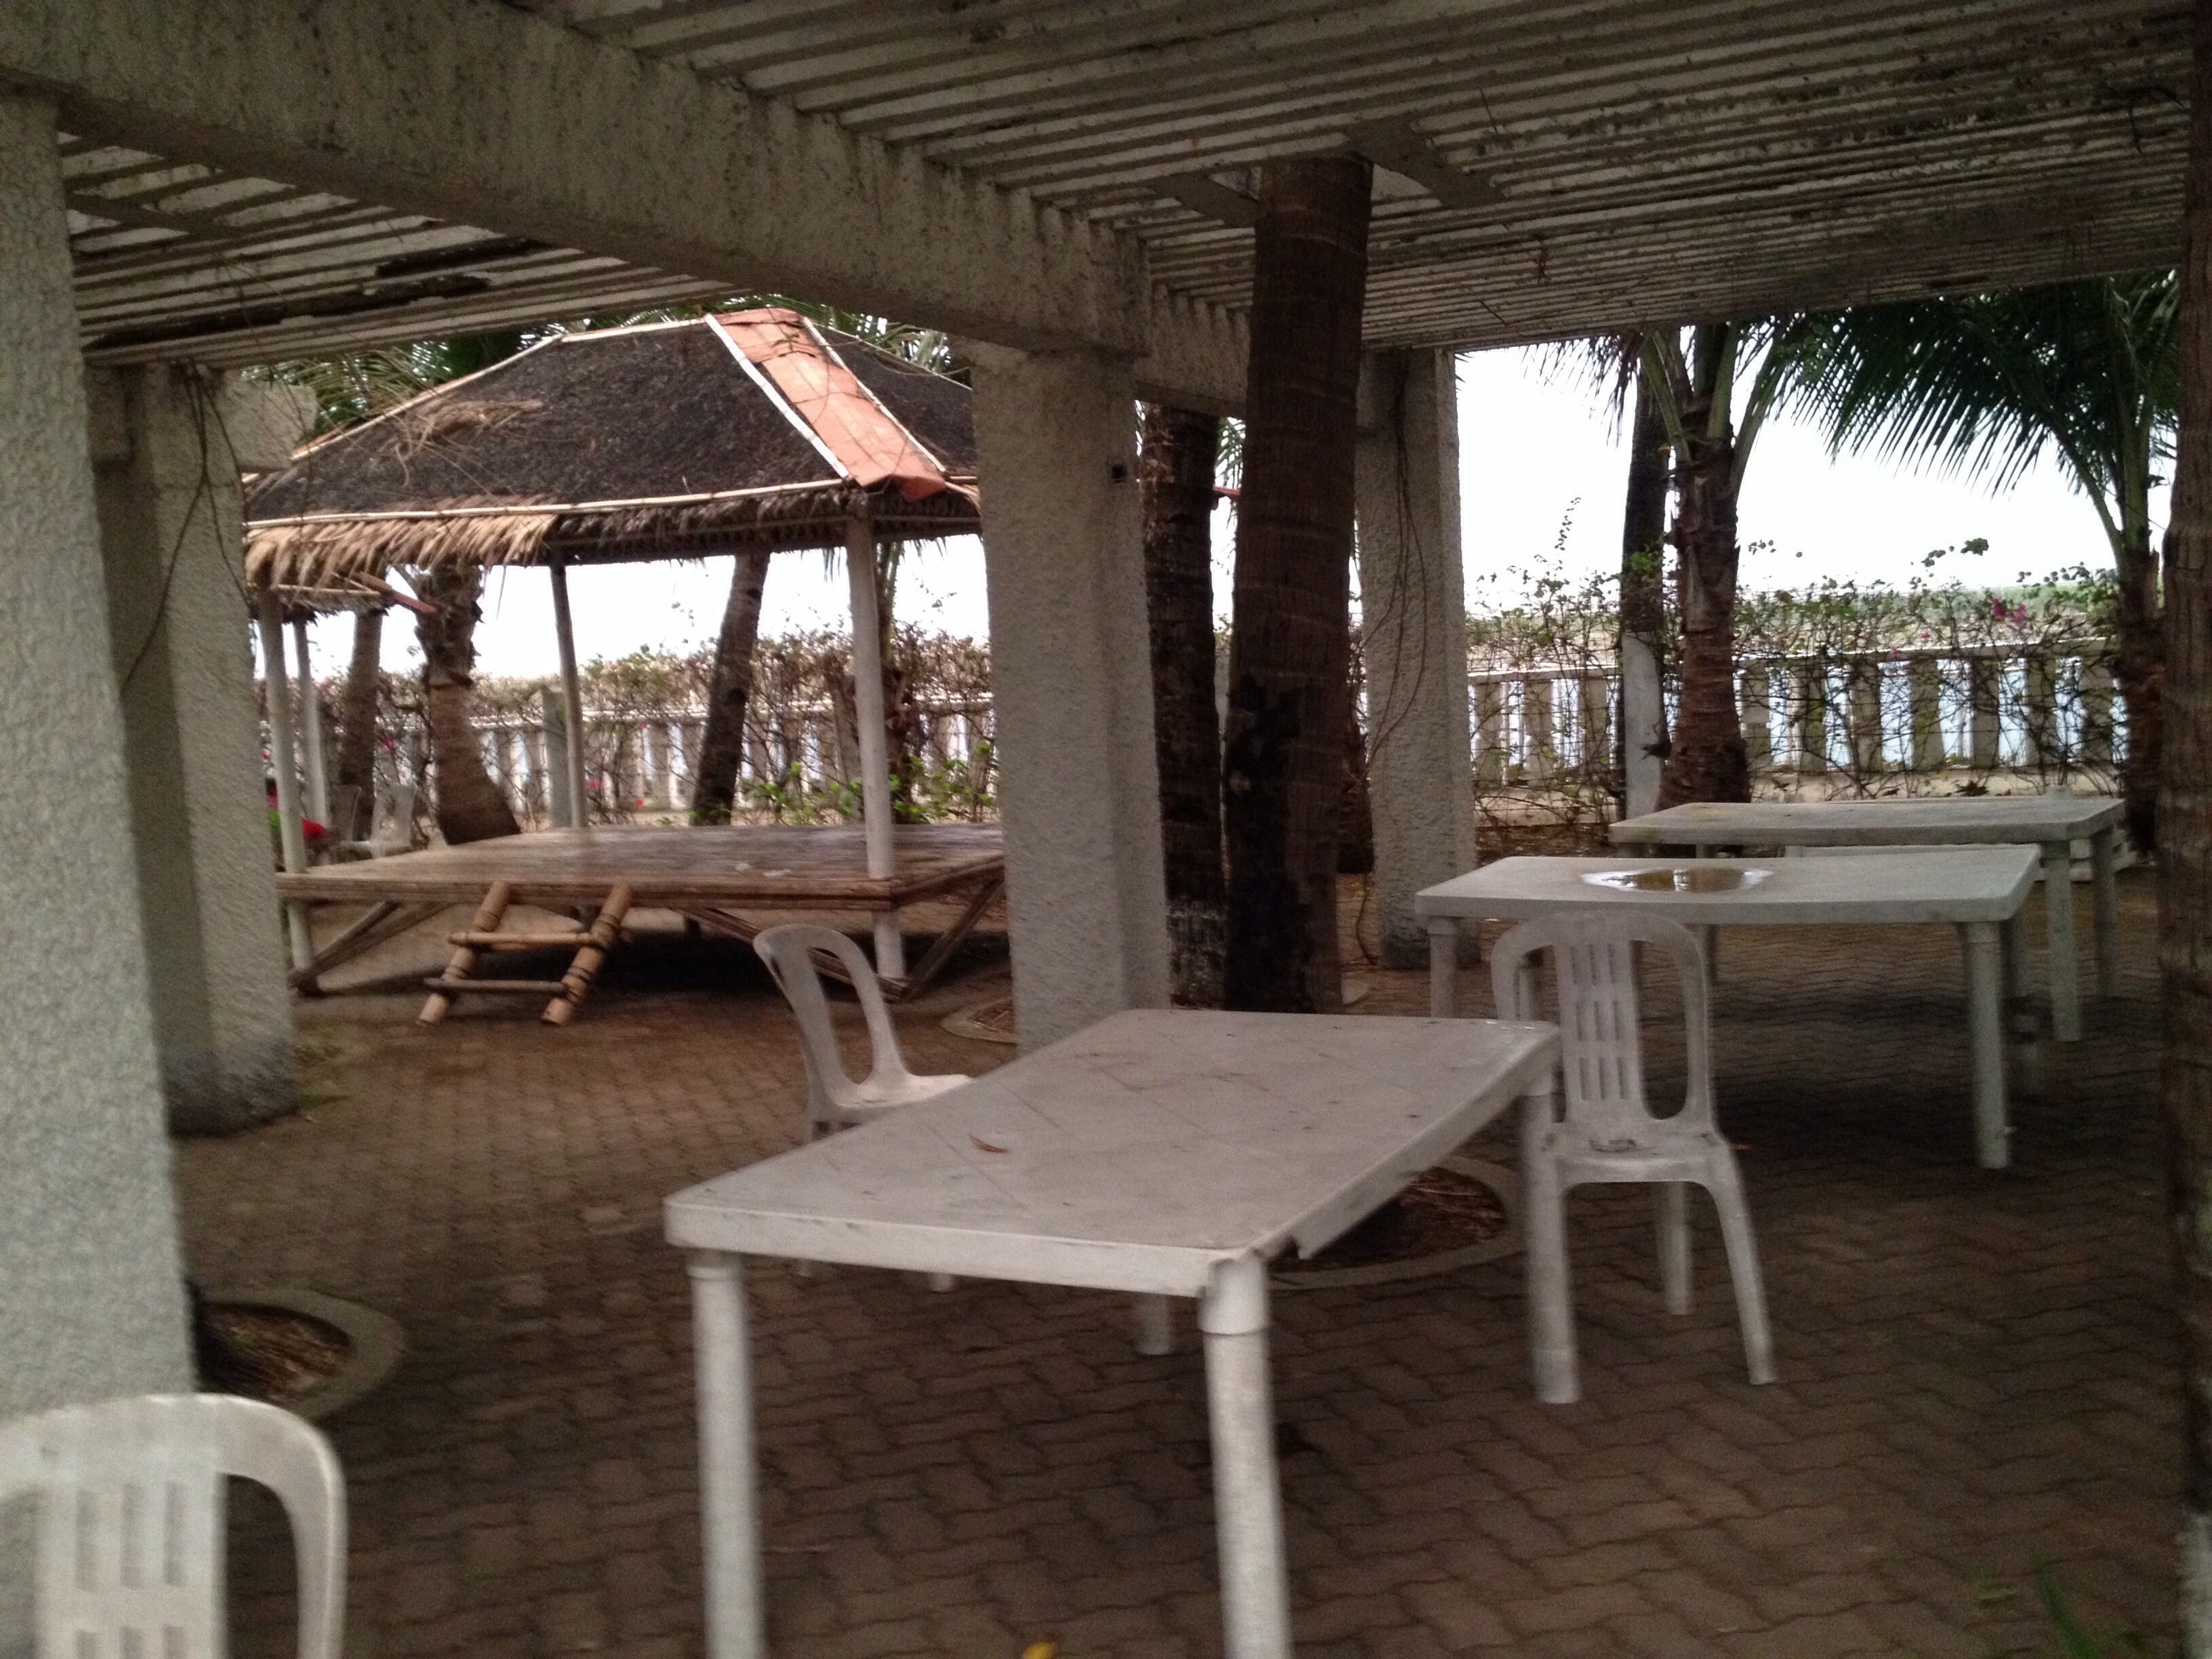 Island Cove Resort and Leisure Park